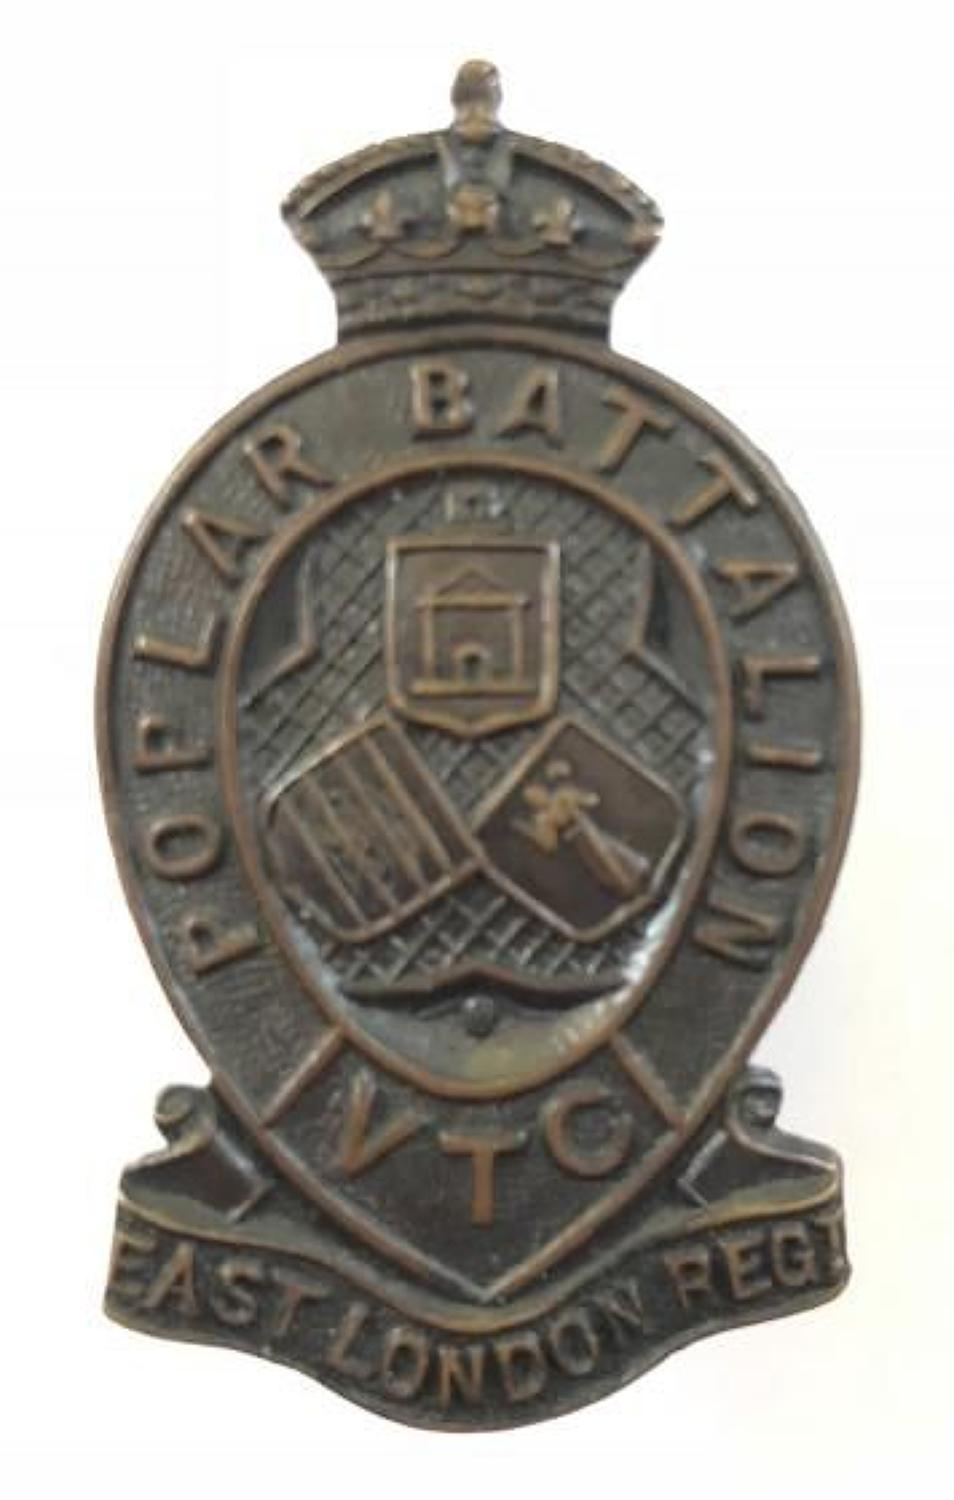 Poplar Battalion, East London Regiment VTC bronxe WW1 badge